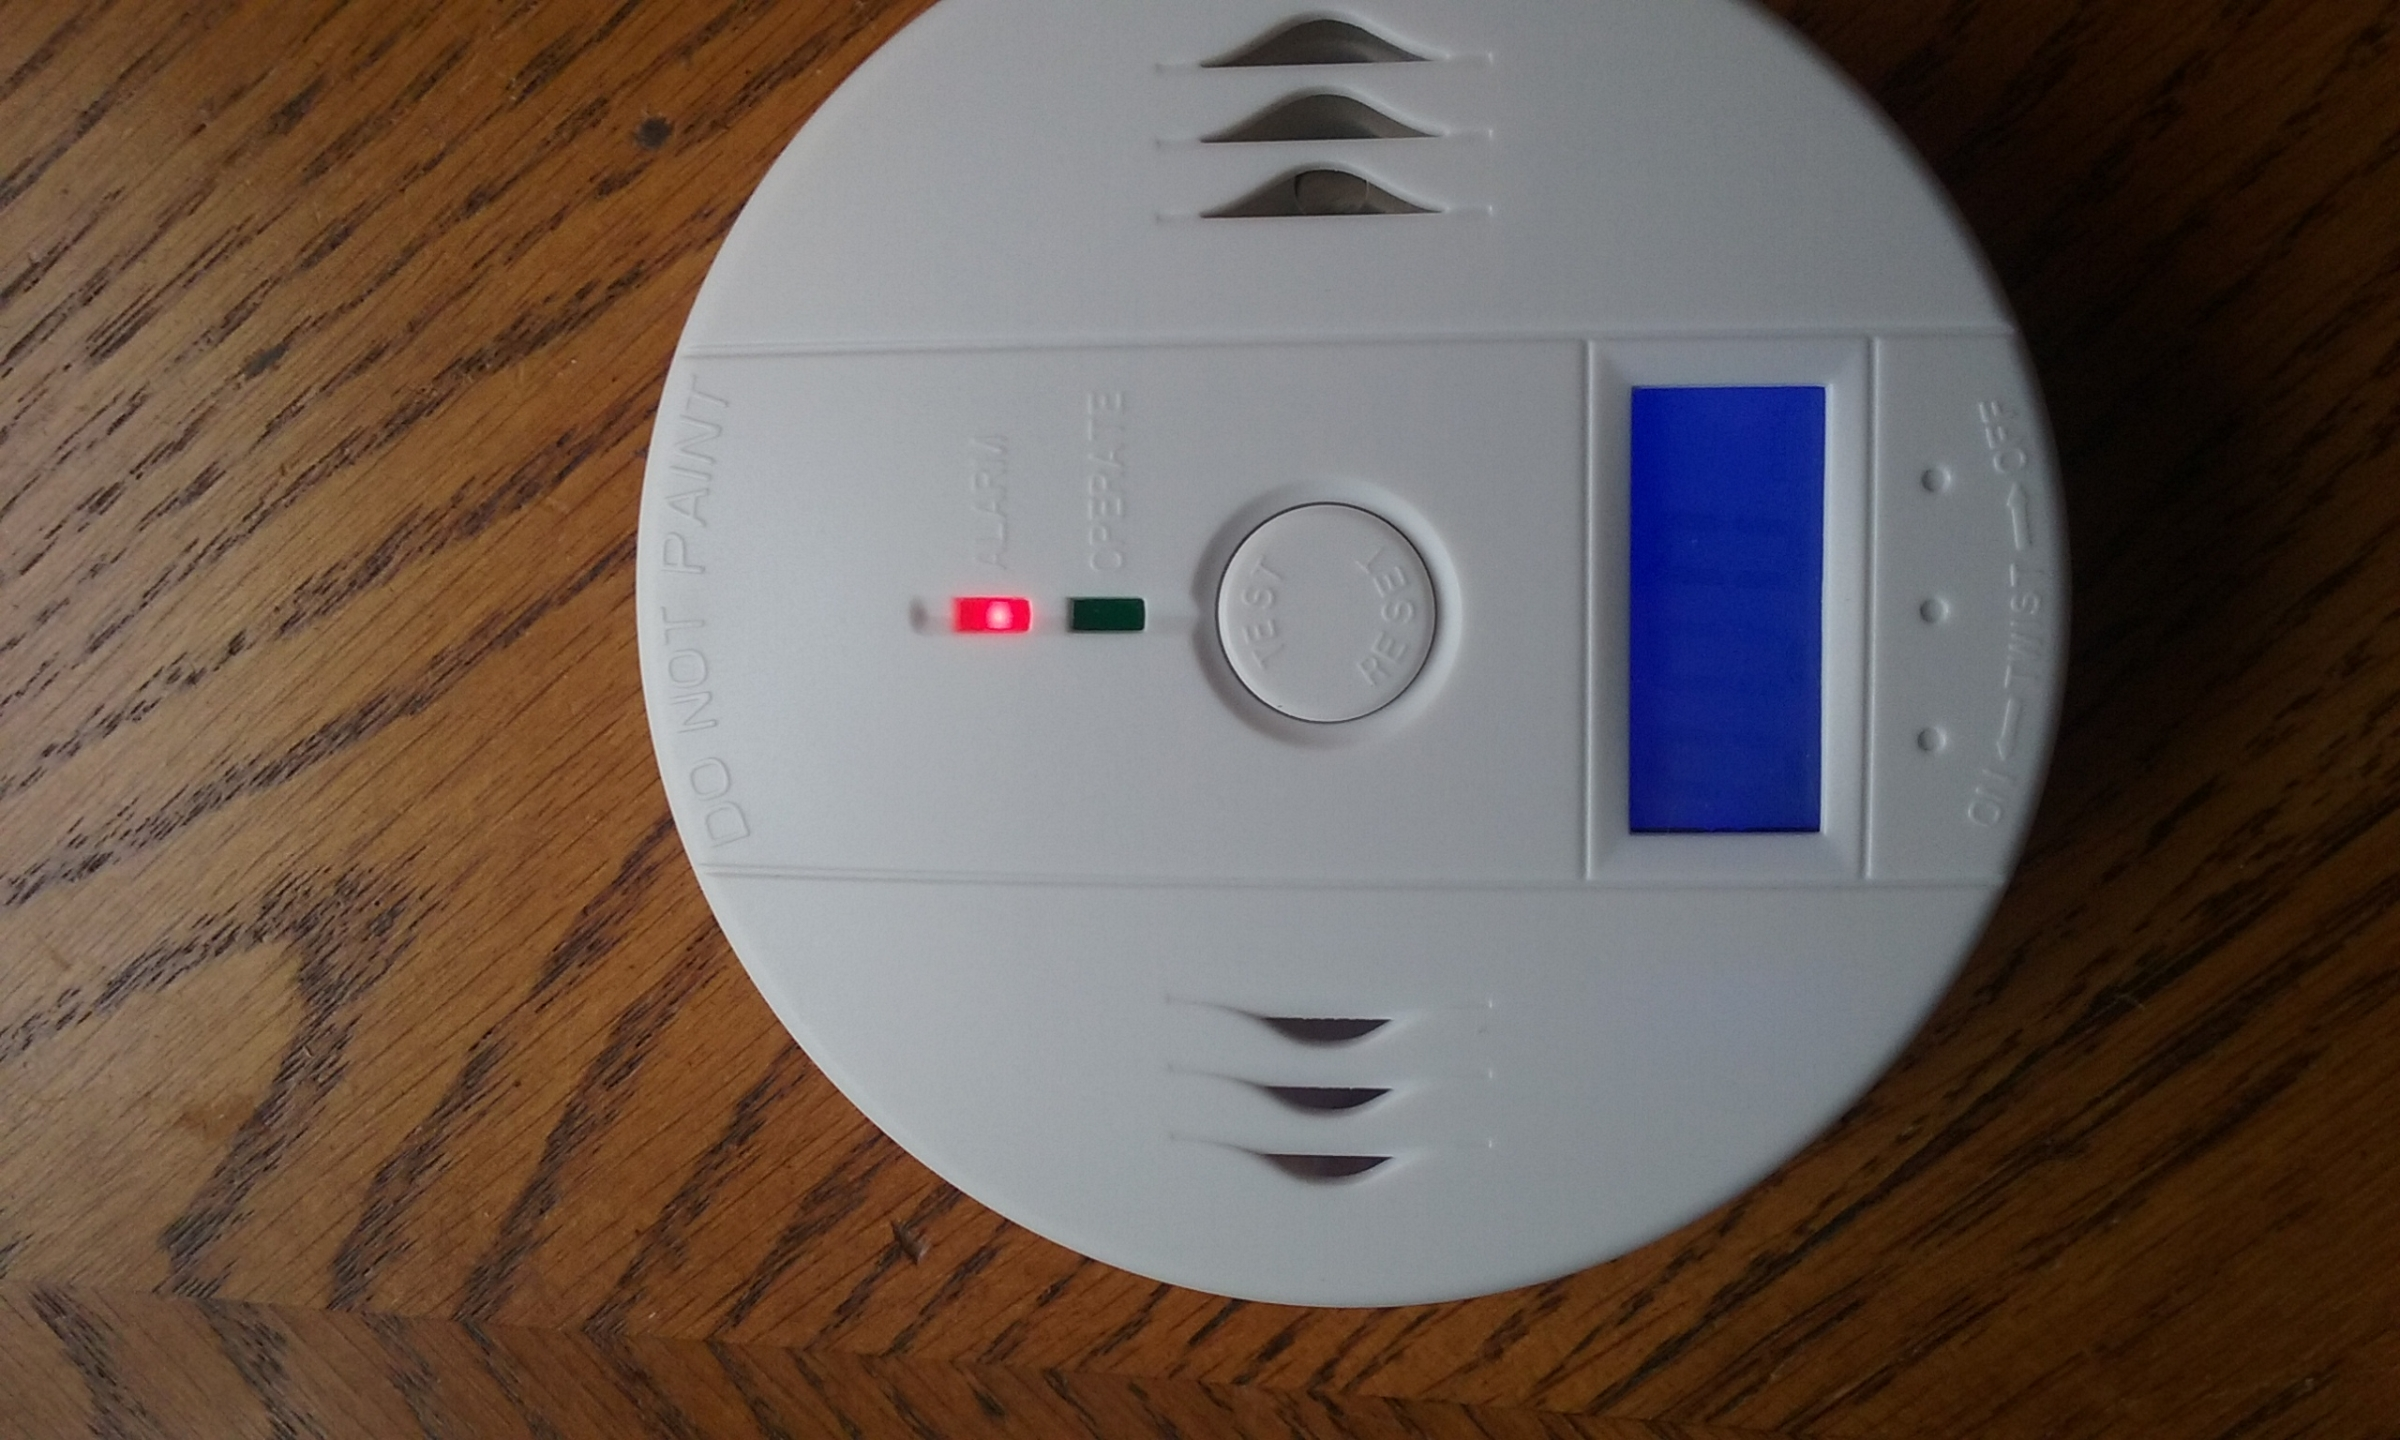 BATTERY-OPERATED LED CARBON MONOXIDE GAS DETECTOR